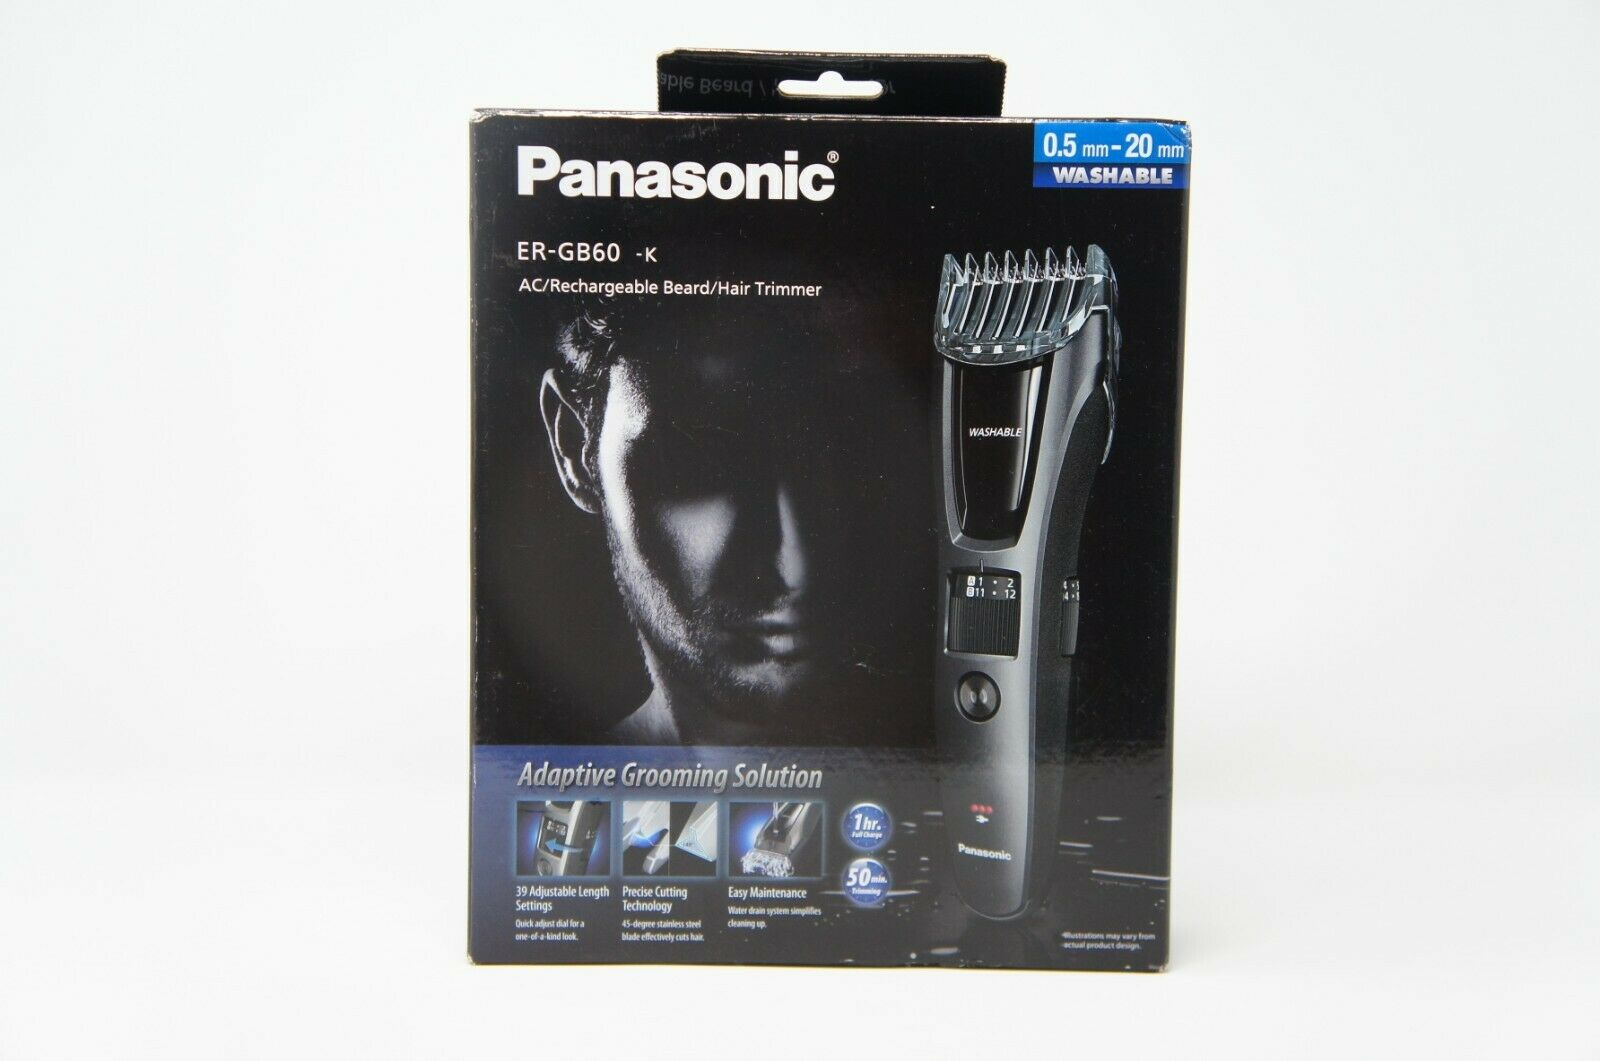 Panasonic ER-GB60K Cordless/Corded Hair and Beard Trimmer